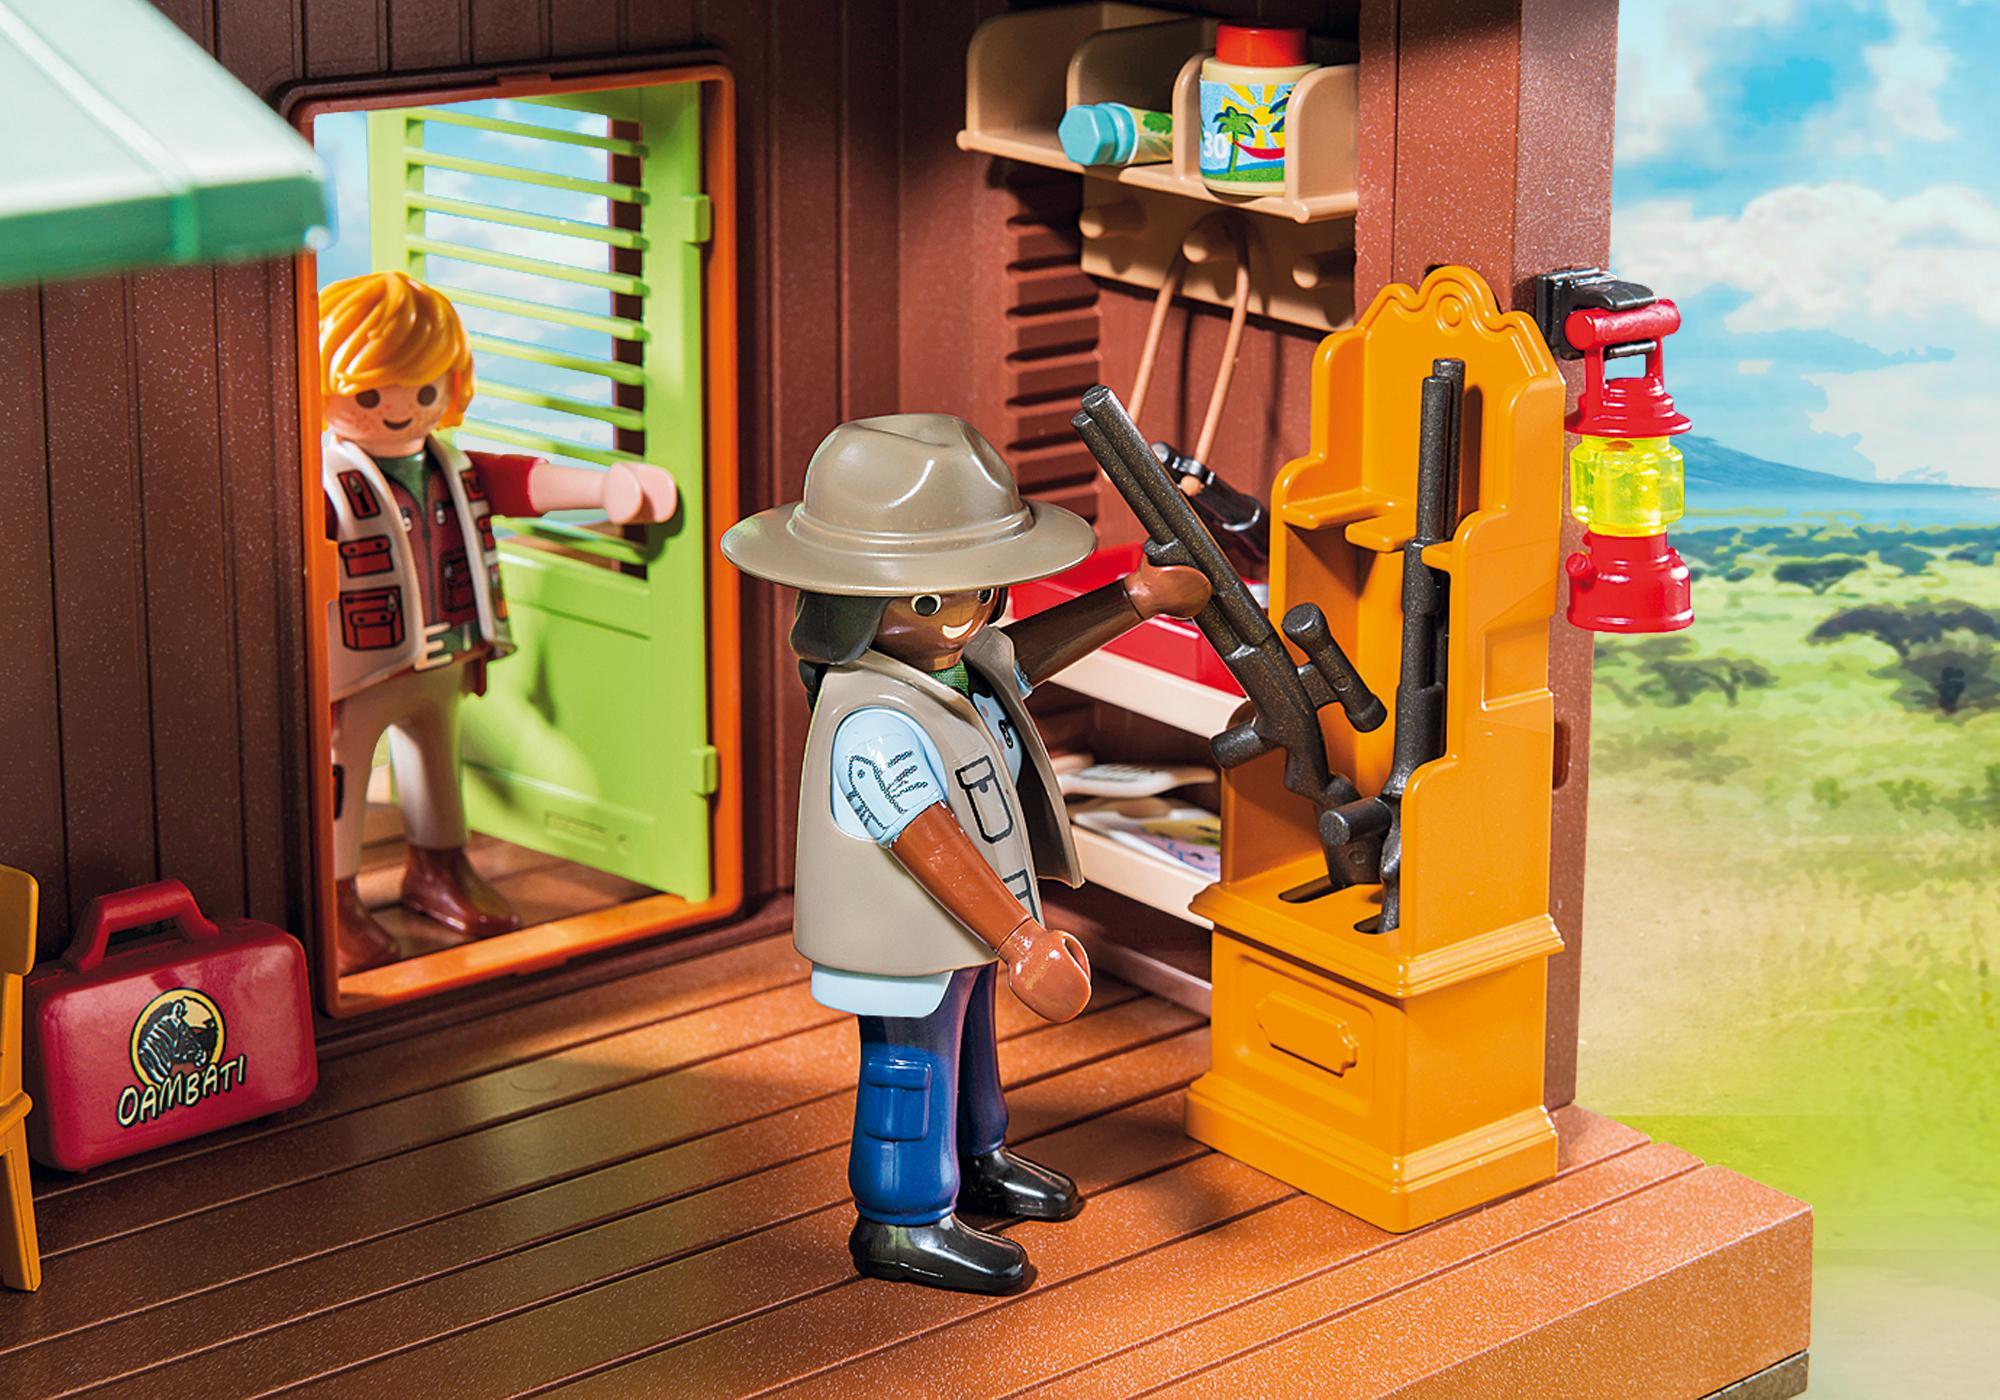 http://media.playmobil.com/i/playmobil/6936_product_extra1